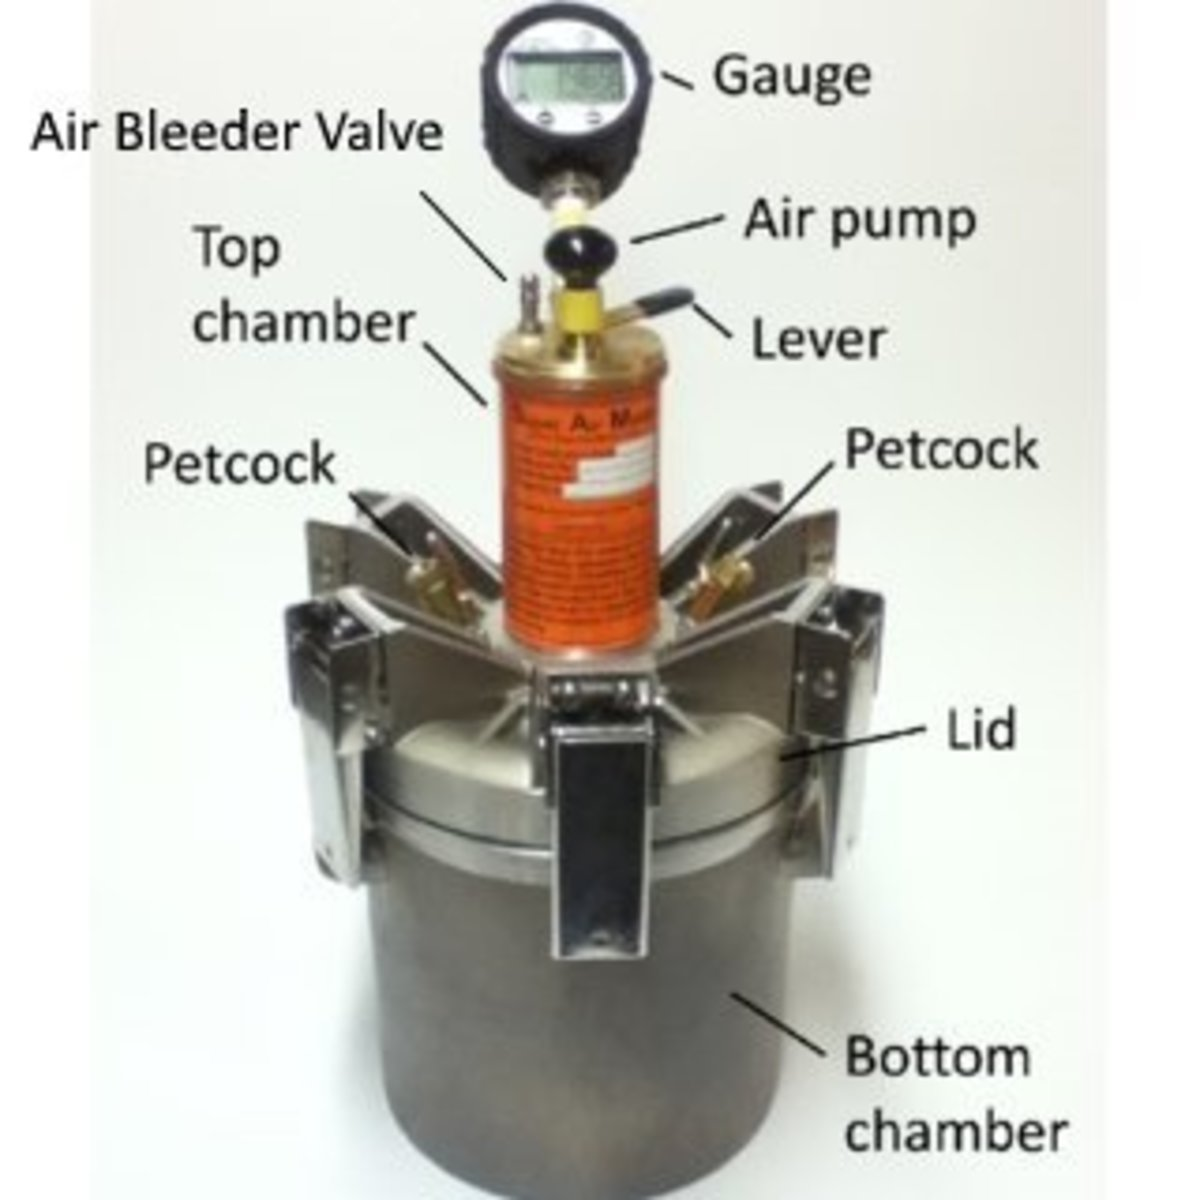 The parts of a type B pressure meter.